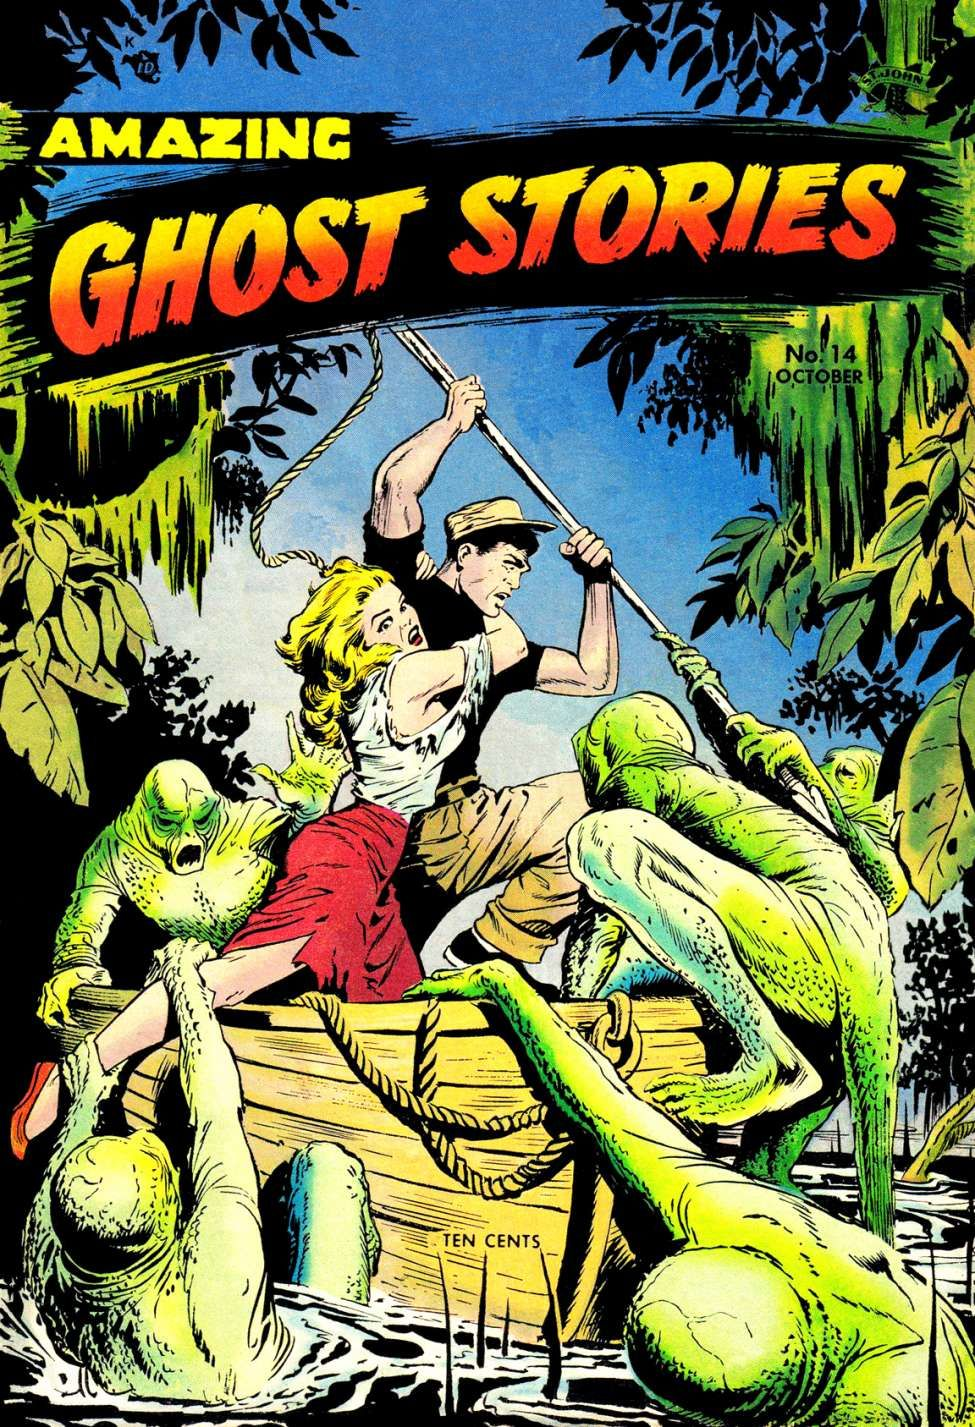 Comic Book Cover For Amazing Ghost Stories v1 #14